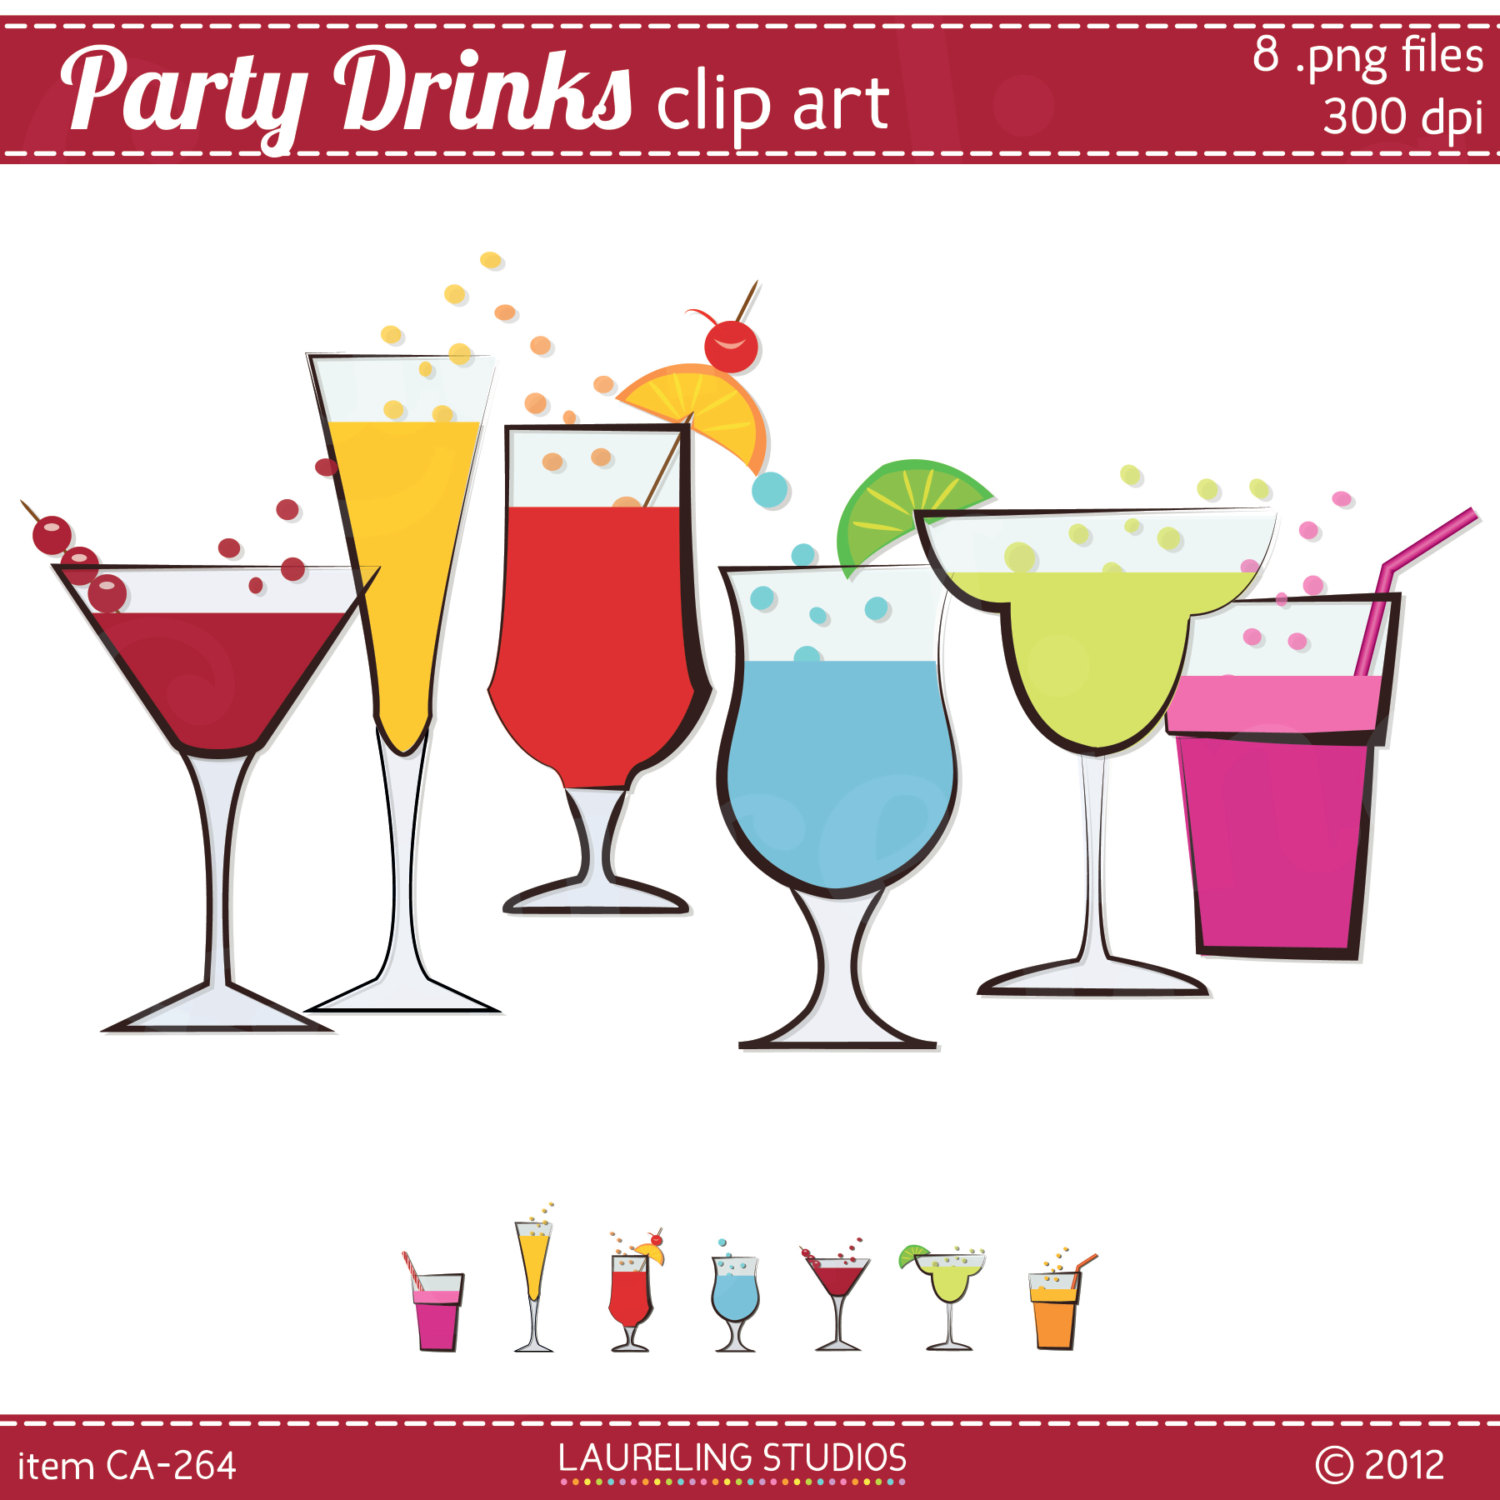 Party drinks clipart.